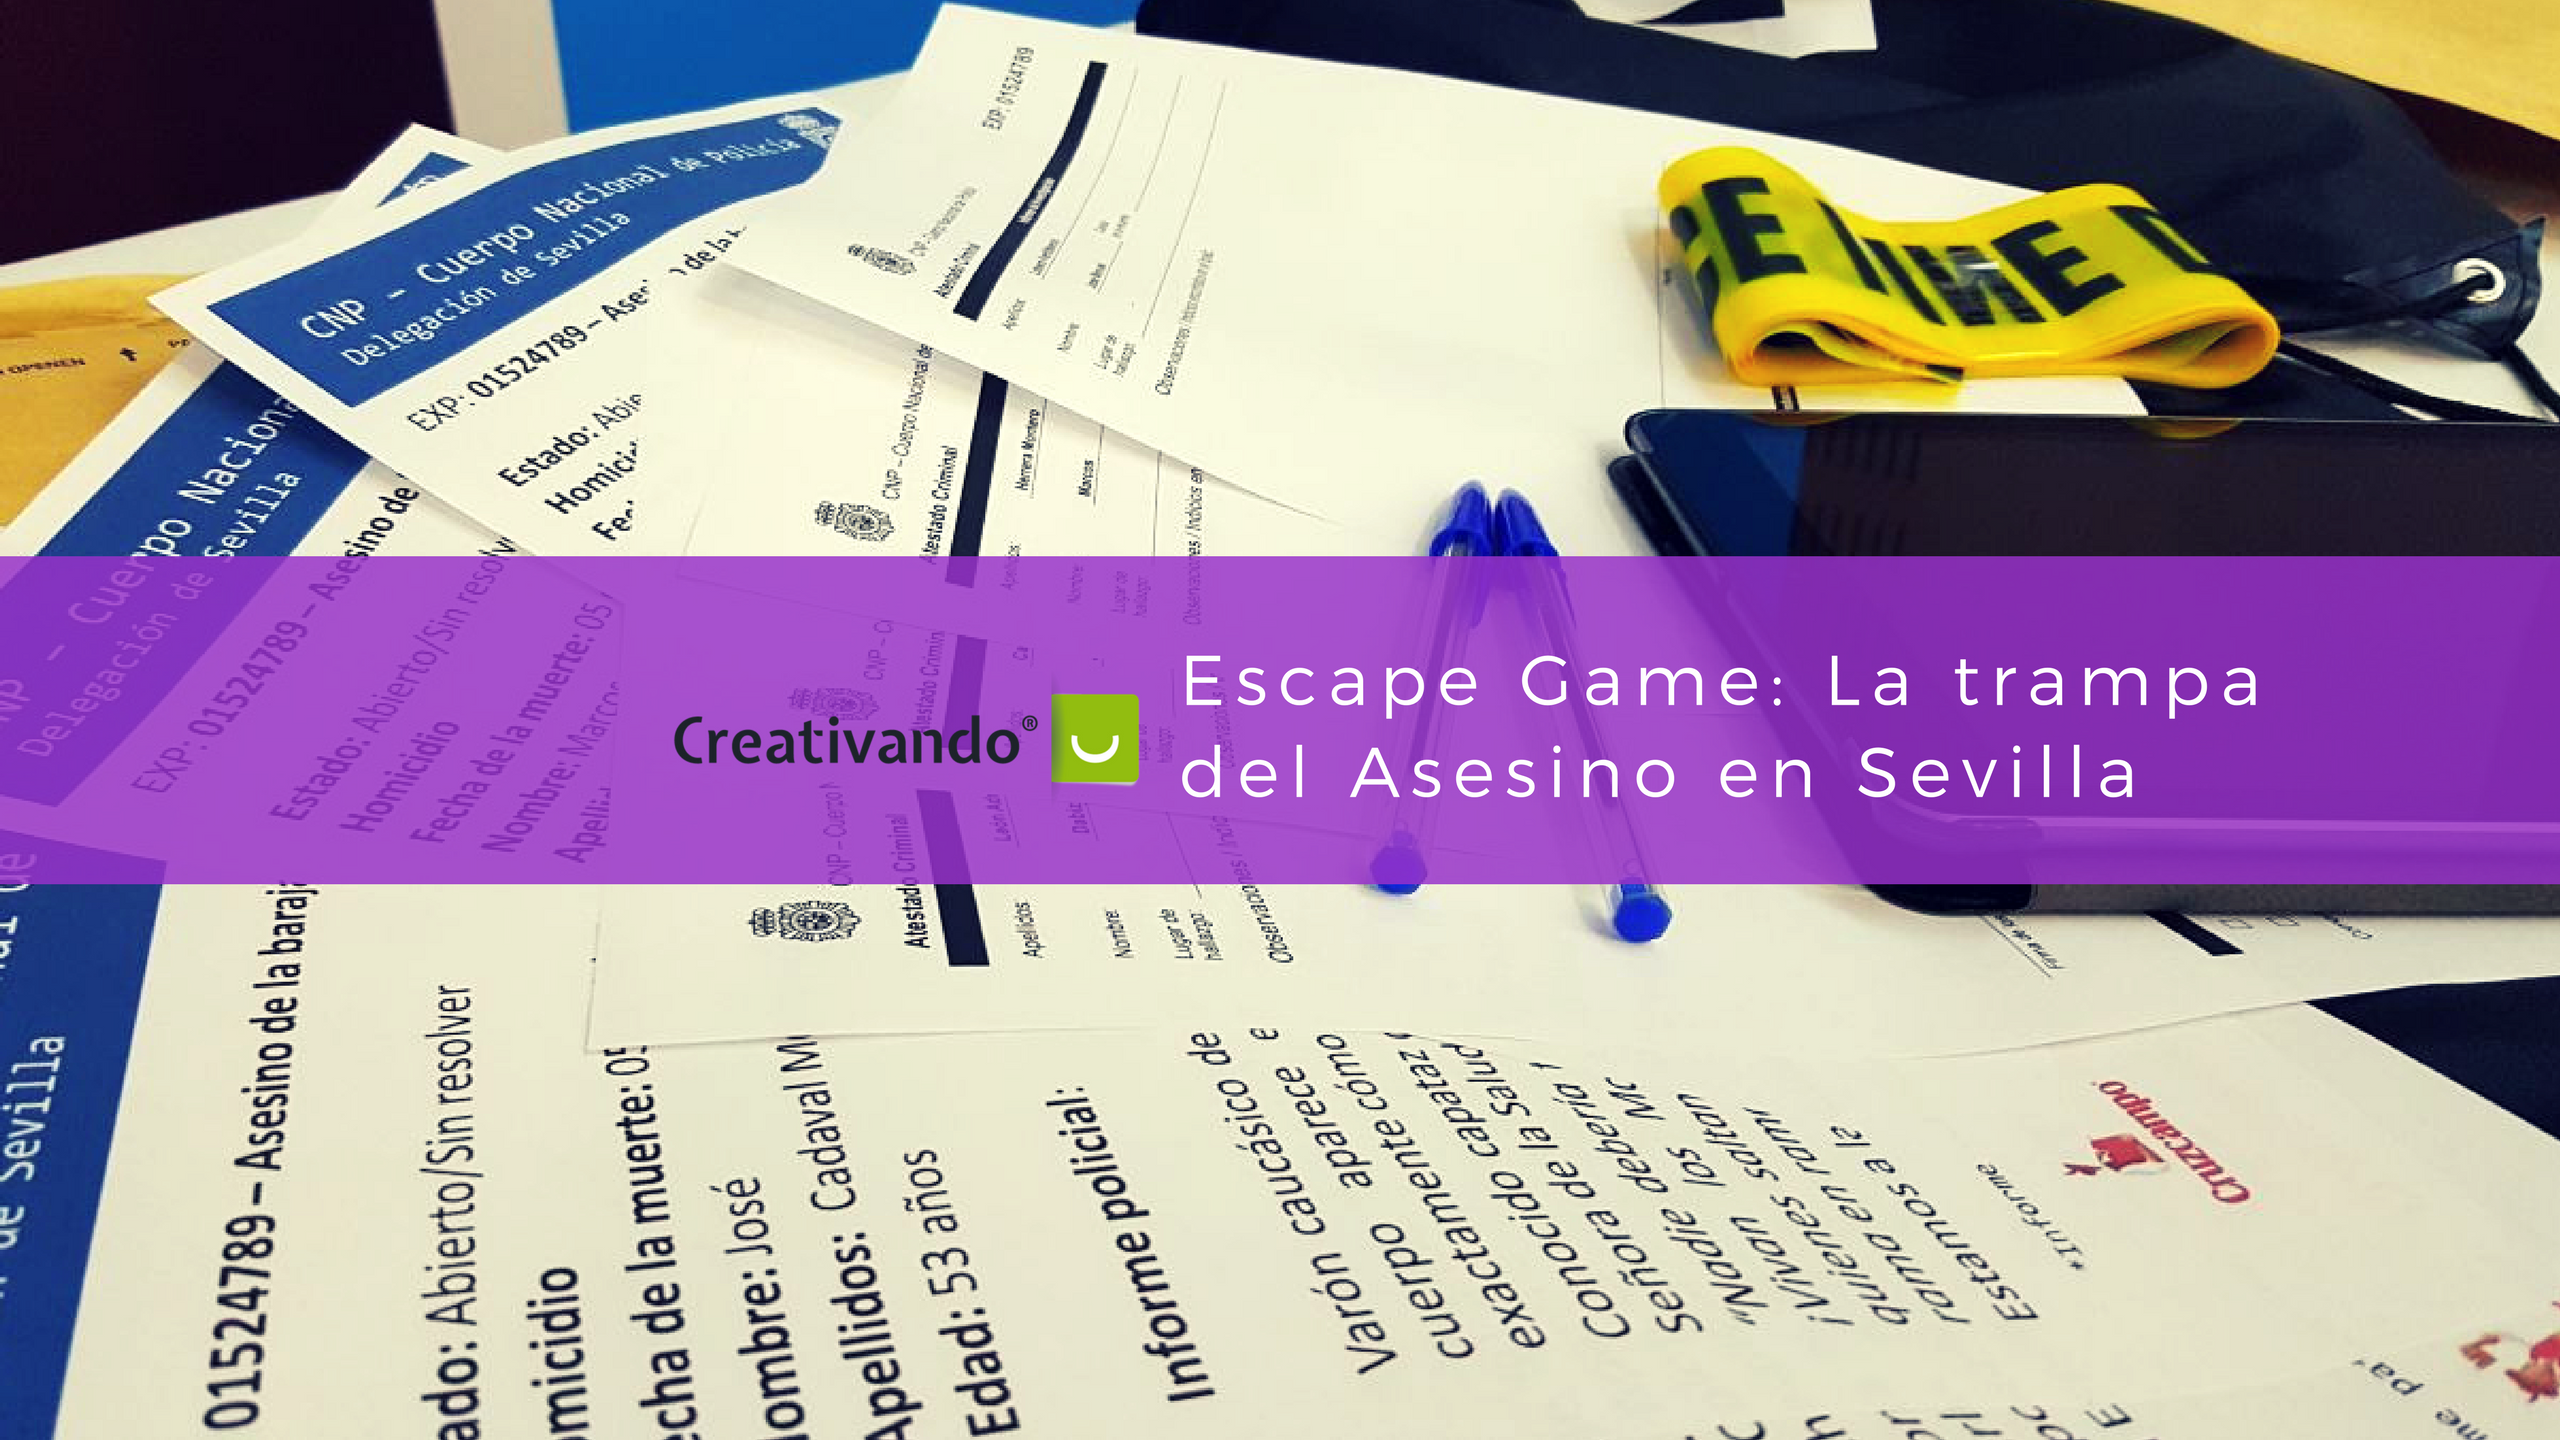 Escape Game - Creativando